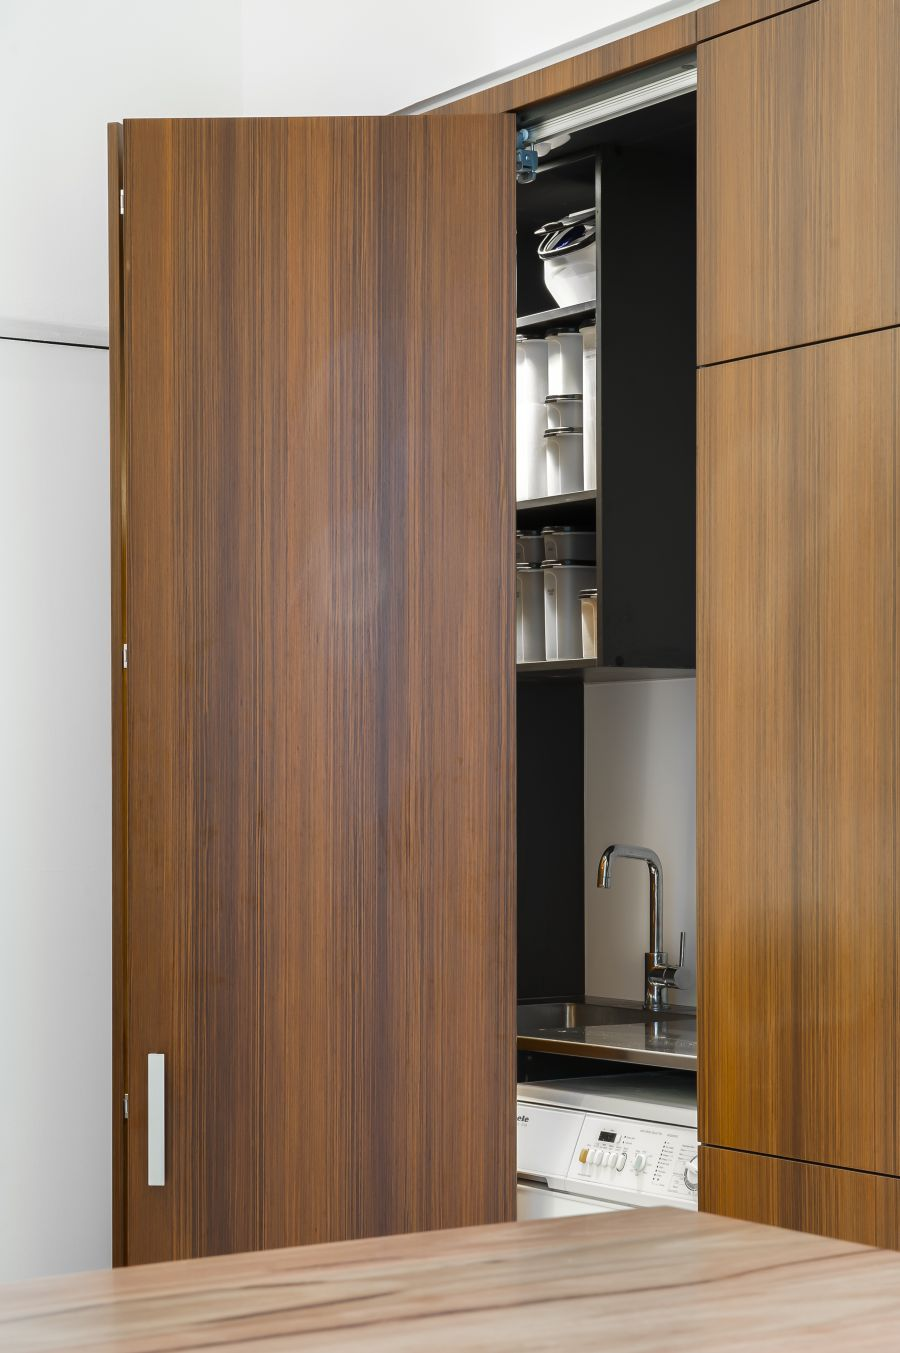 Hidden Kitchen Small Contemporary Kitchen Makes Room For Home Office And Laundry